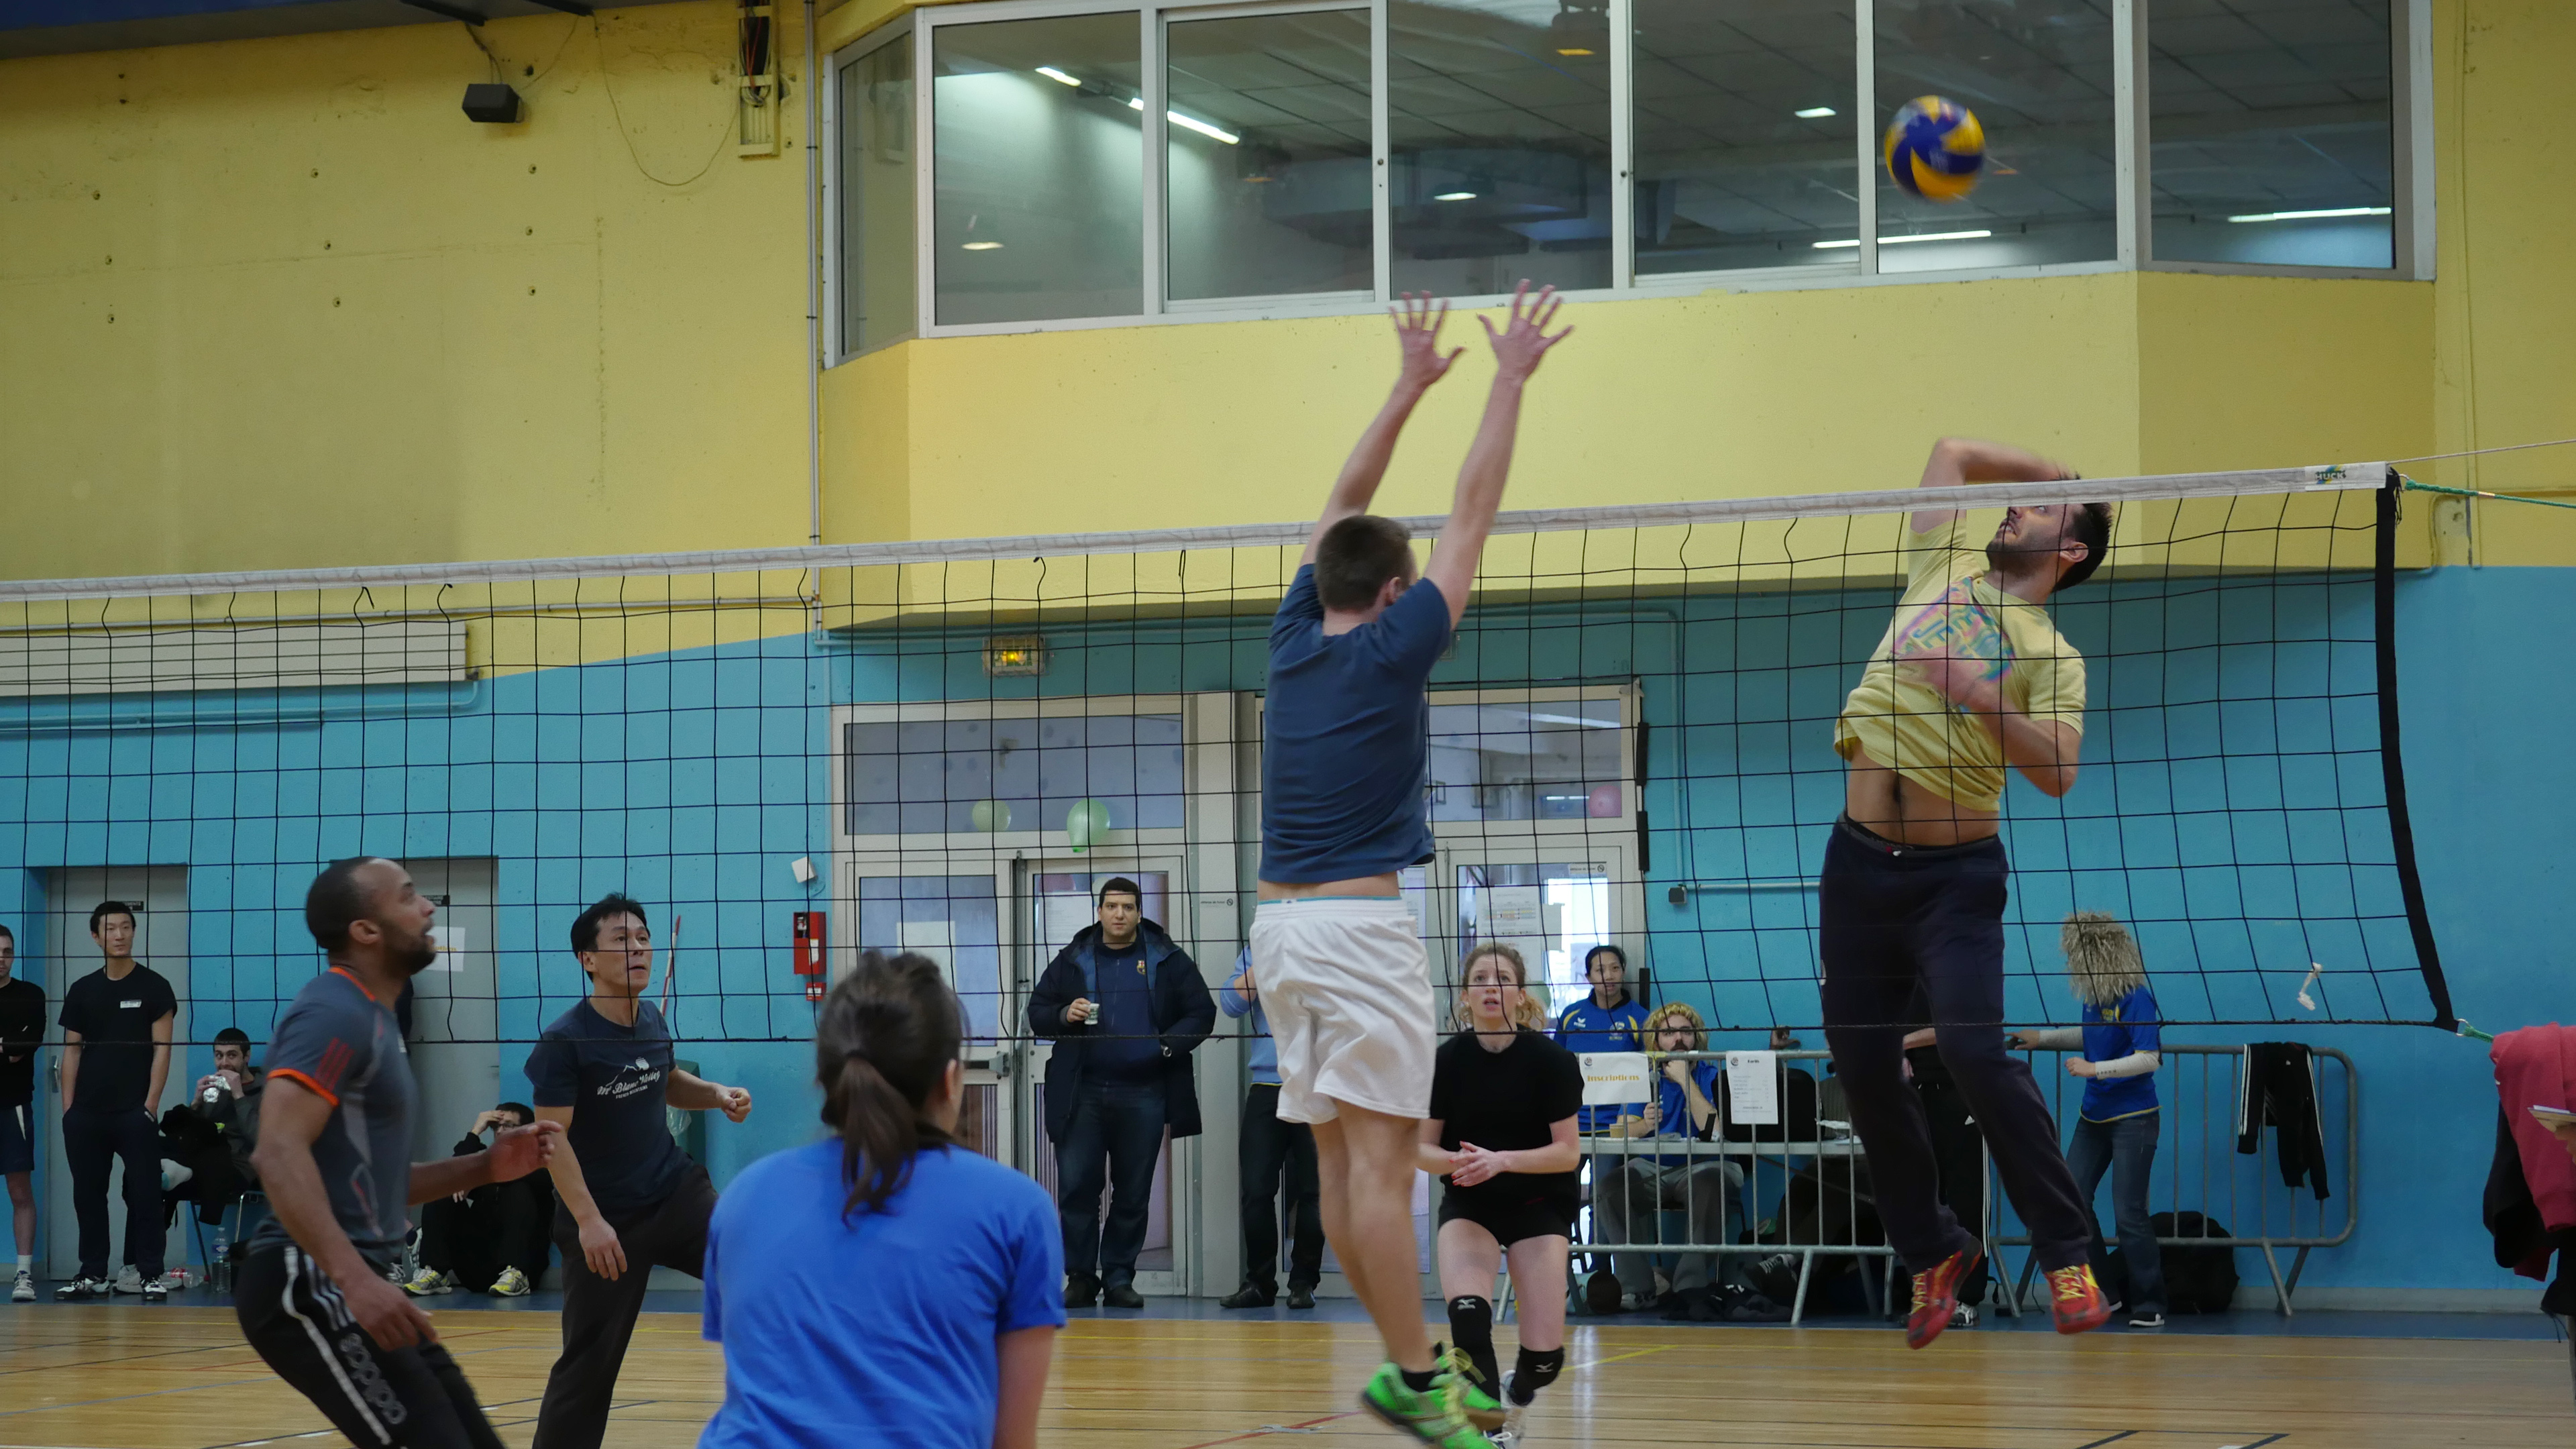 Tournoi Volley USMA 2015-46.JPG